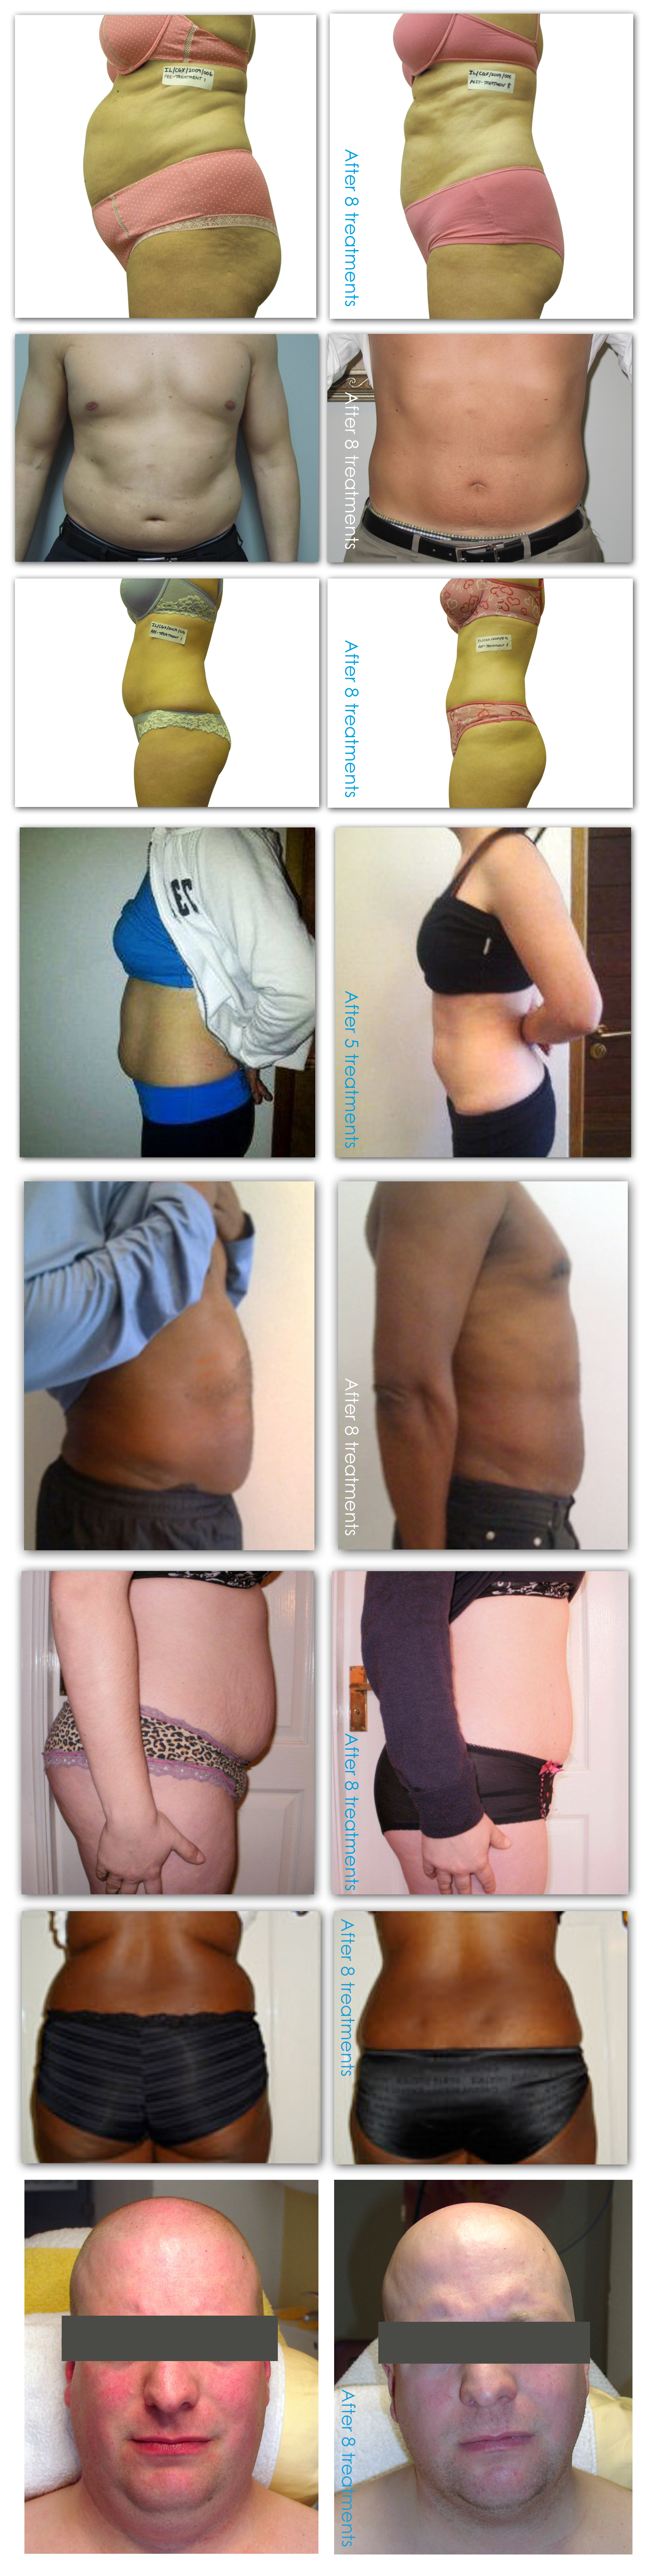 i-Lipo-before-after-web-new.jpg